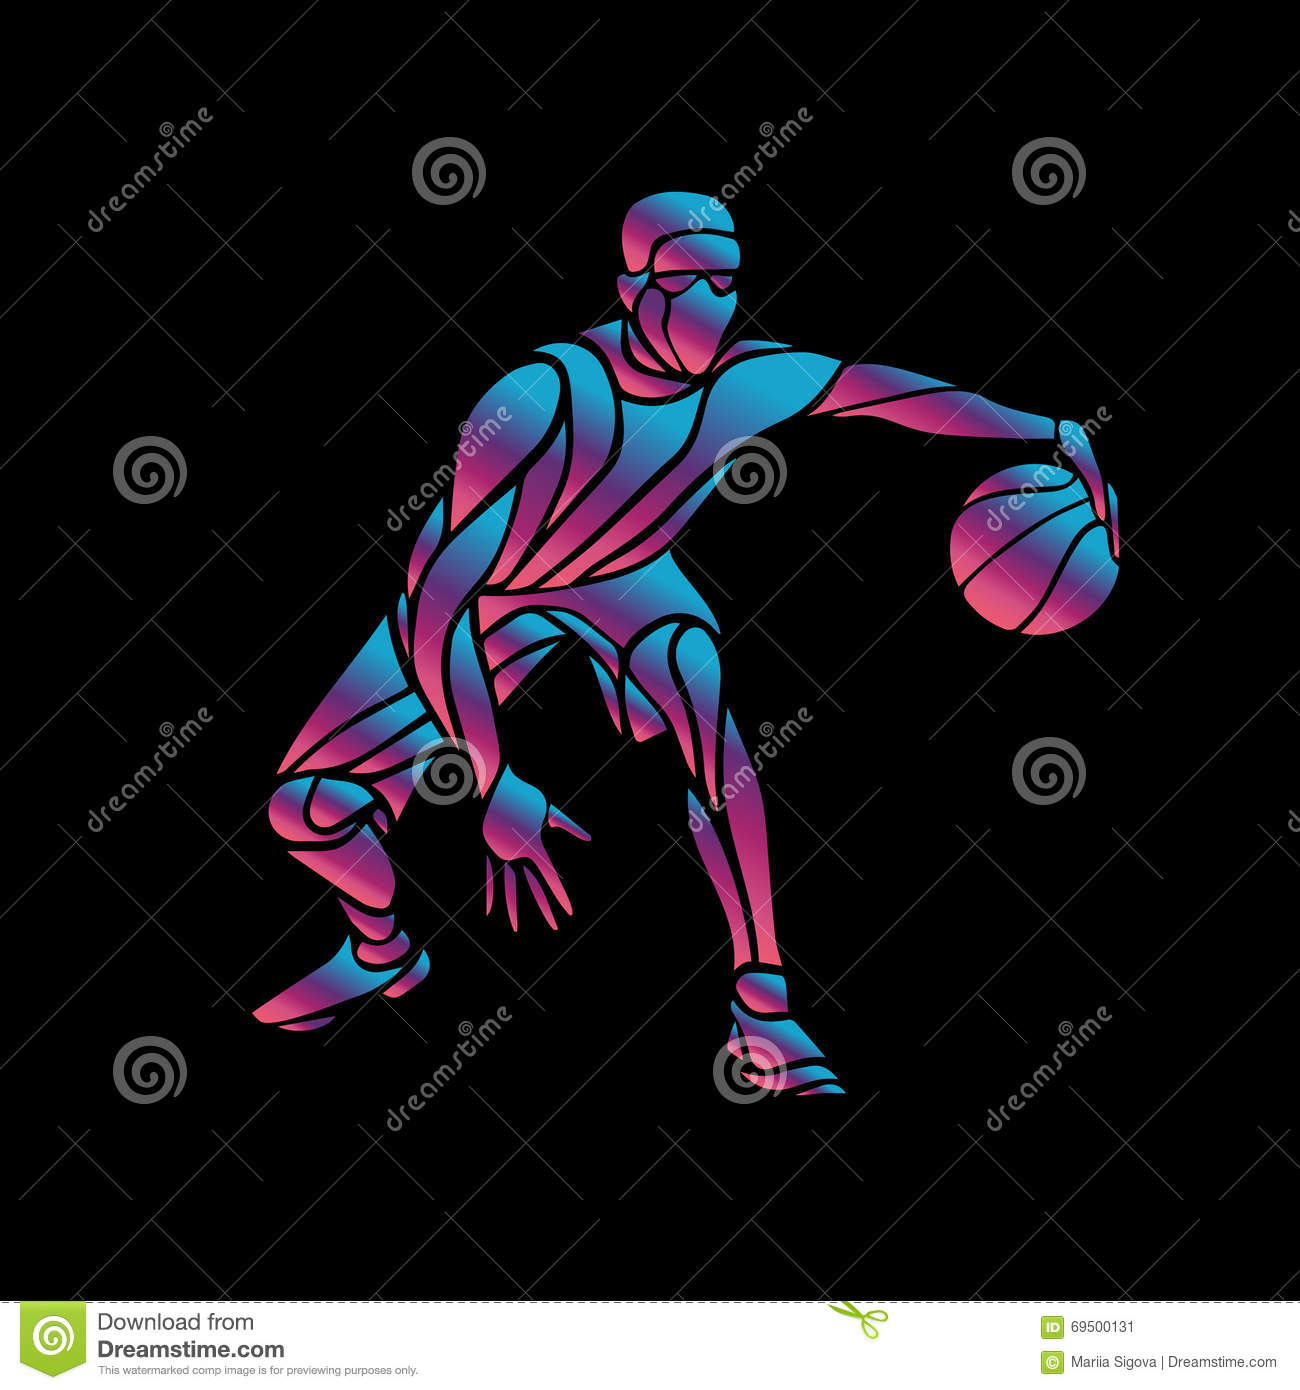 Knight Basketball Player Wallpaper: Basketball Player Slam Dunk Neon Glow Silhouette Stock